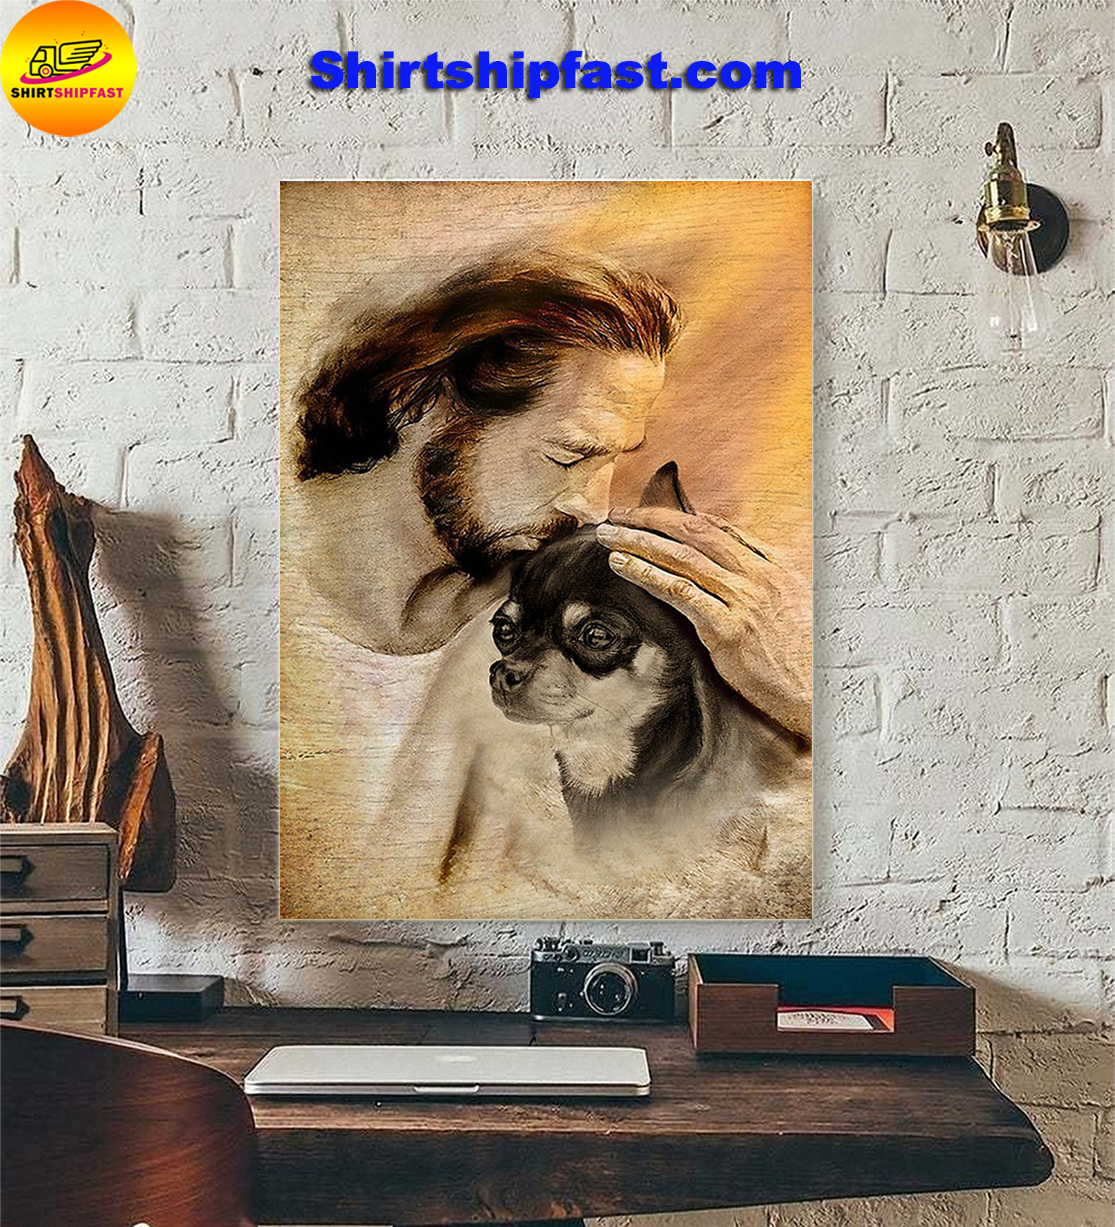 Jesus hug lovely Chihuahua poster - Picture 3